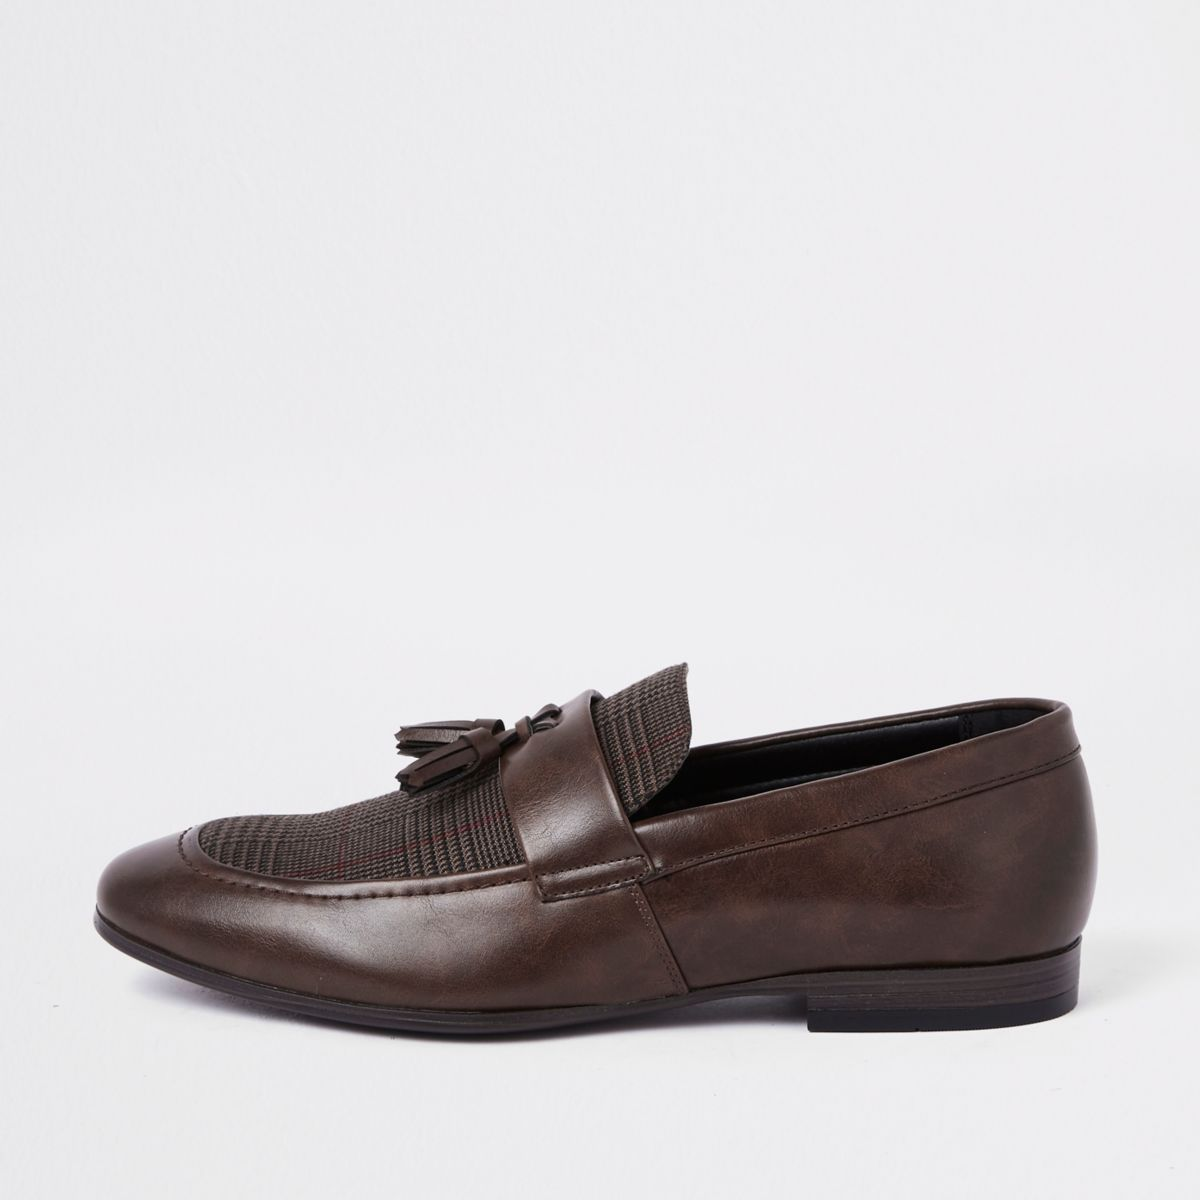 Brown check print tassel loafers